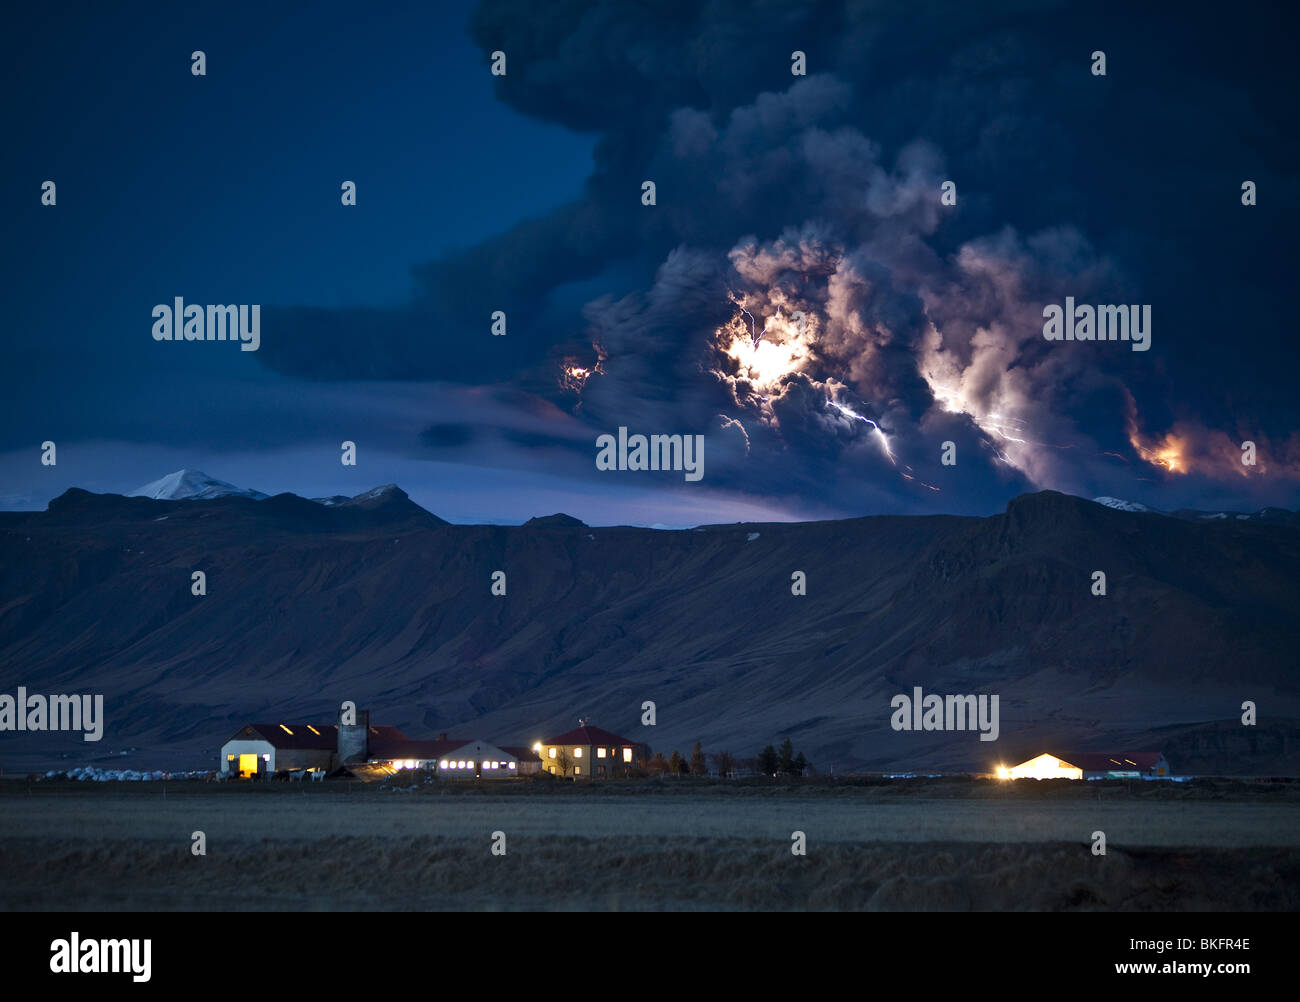 Lightning in ash cloud during Eyjafjallajokull Volcanic, Eruption with Dalsel Farm, Iceland - Stock Image